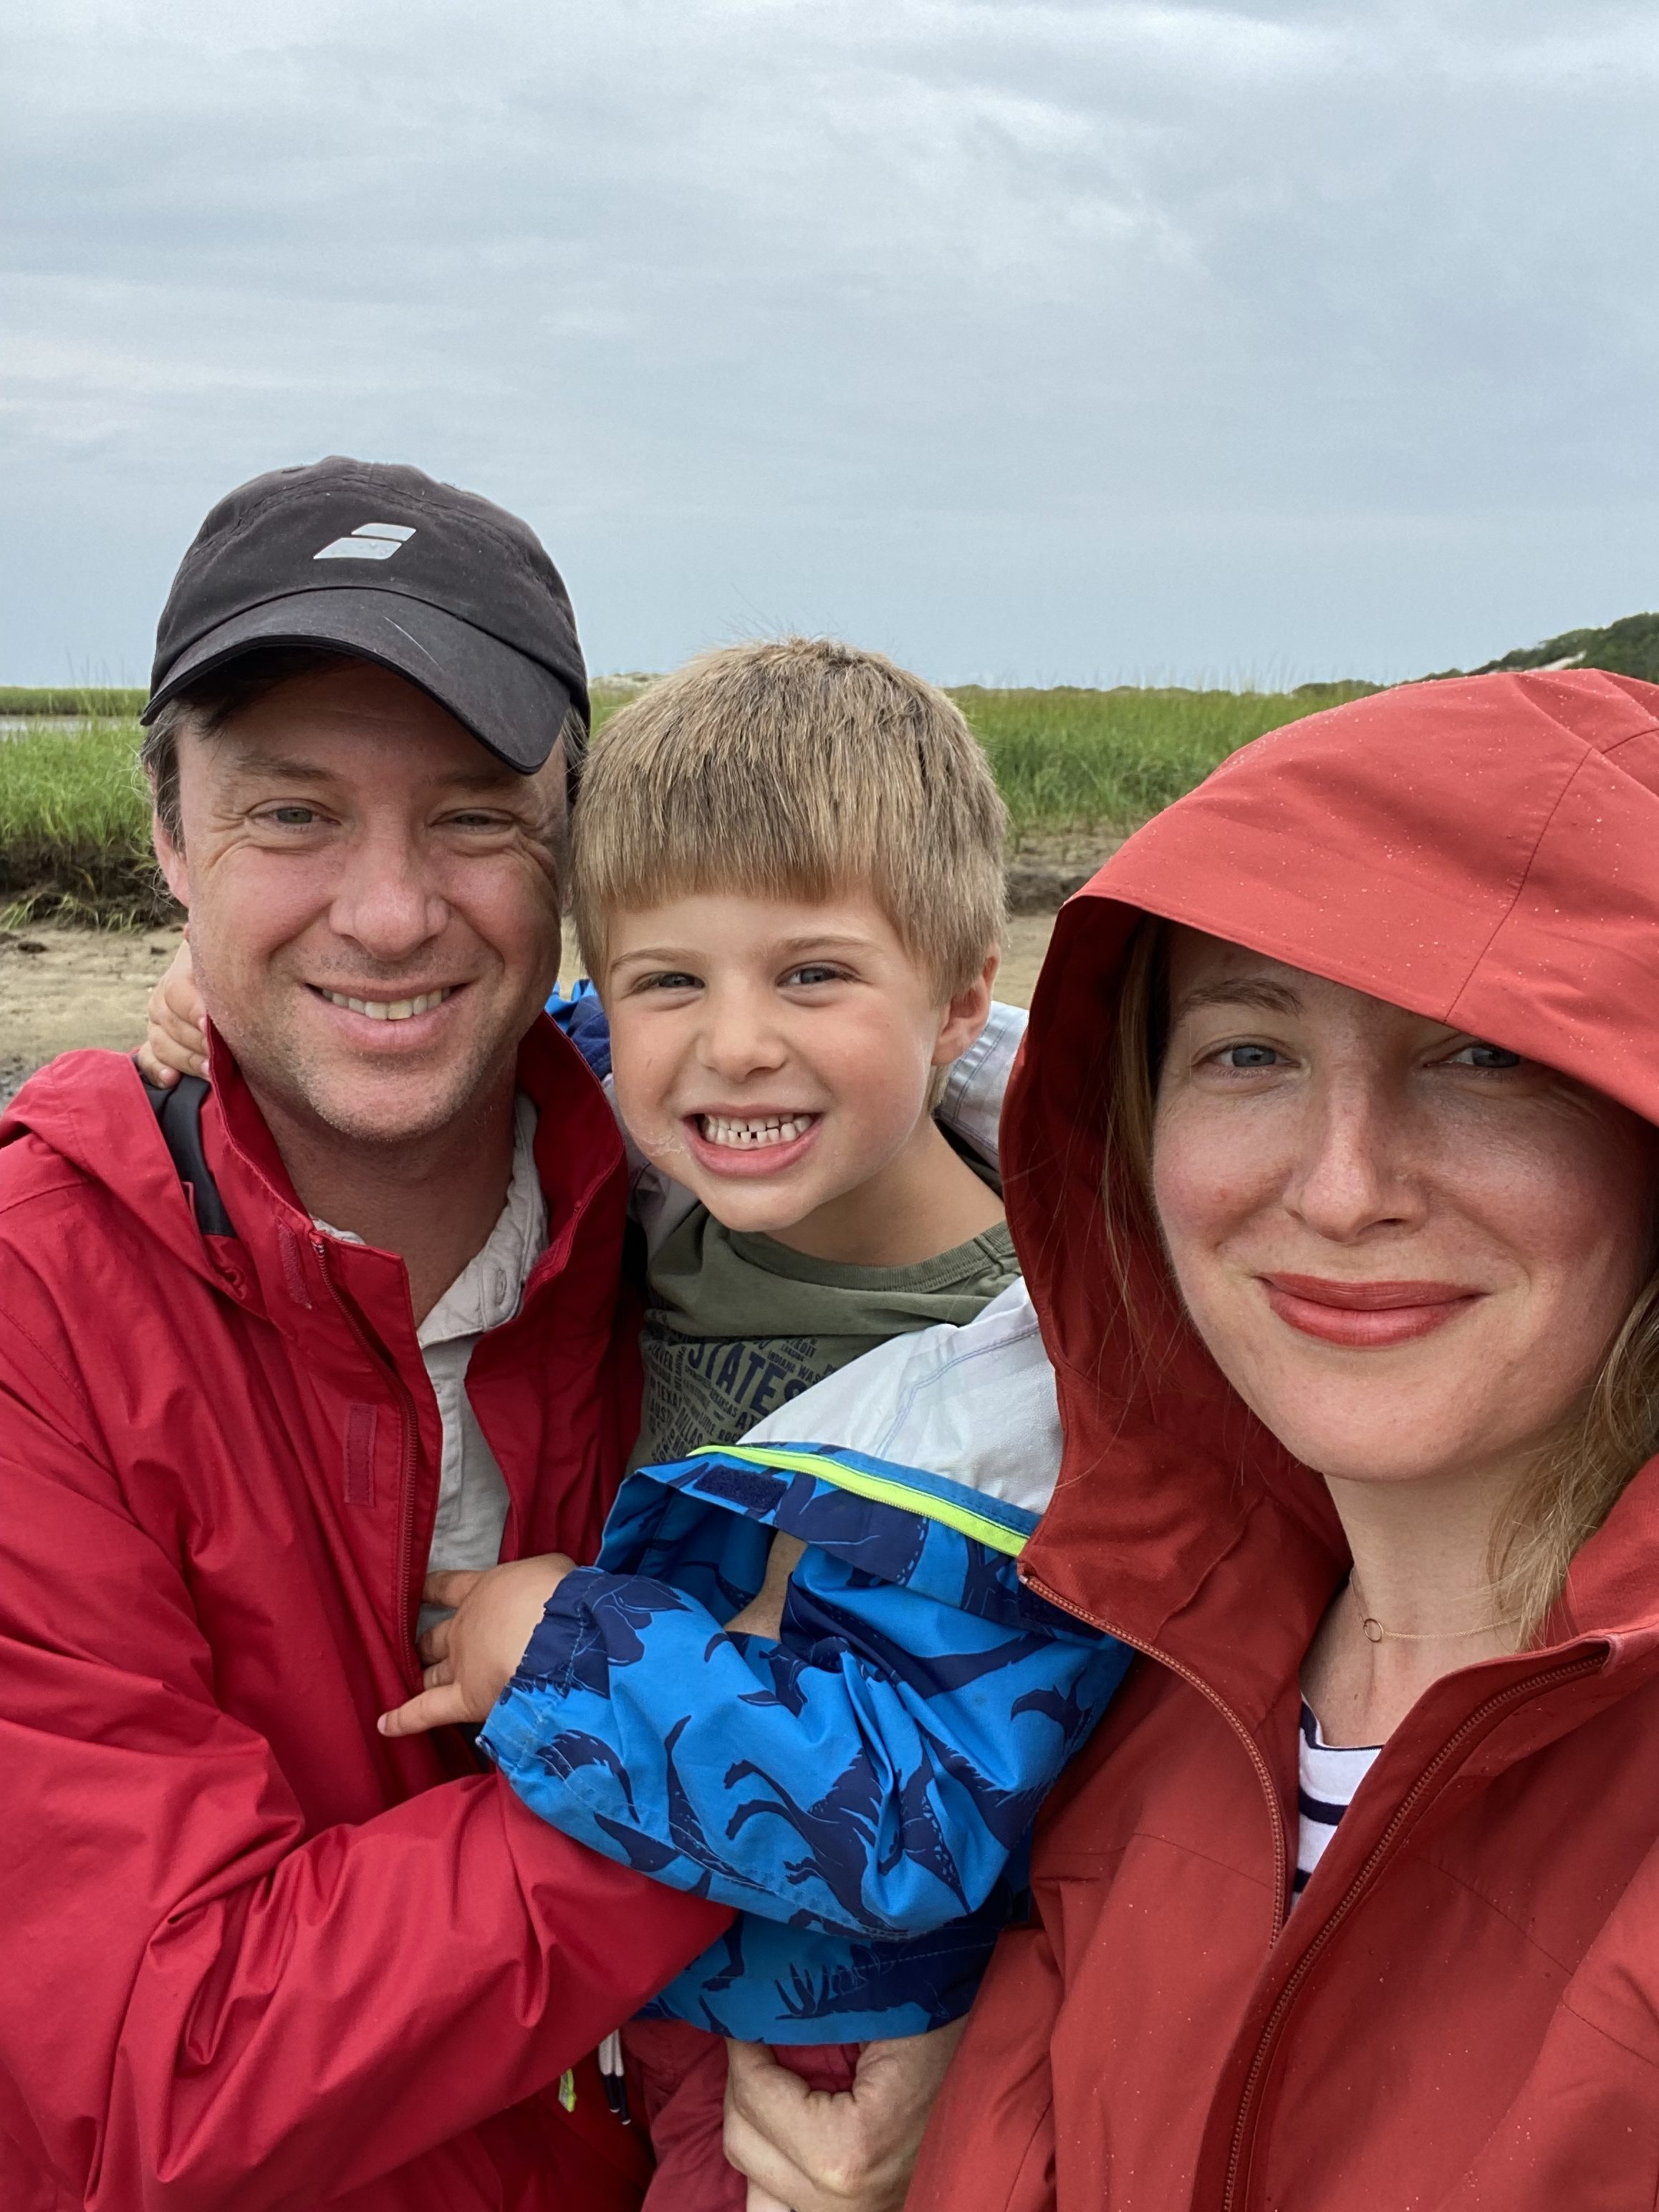 Sarah with her husband and son.